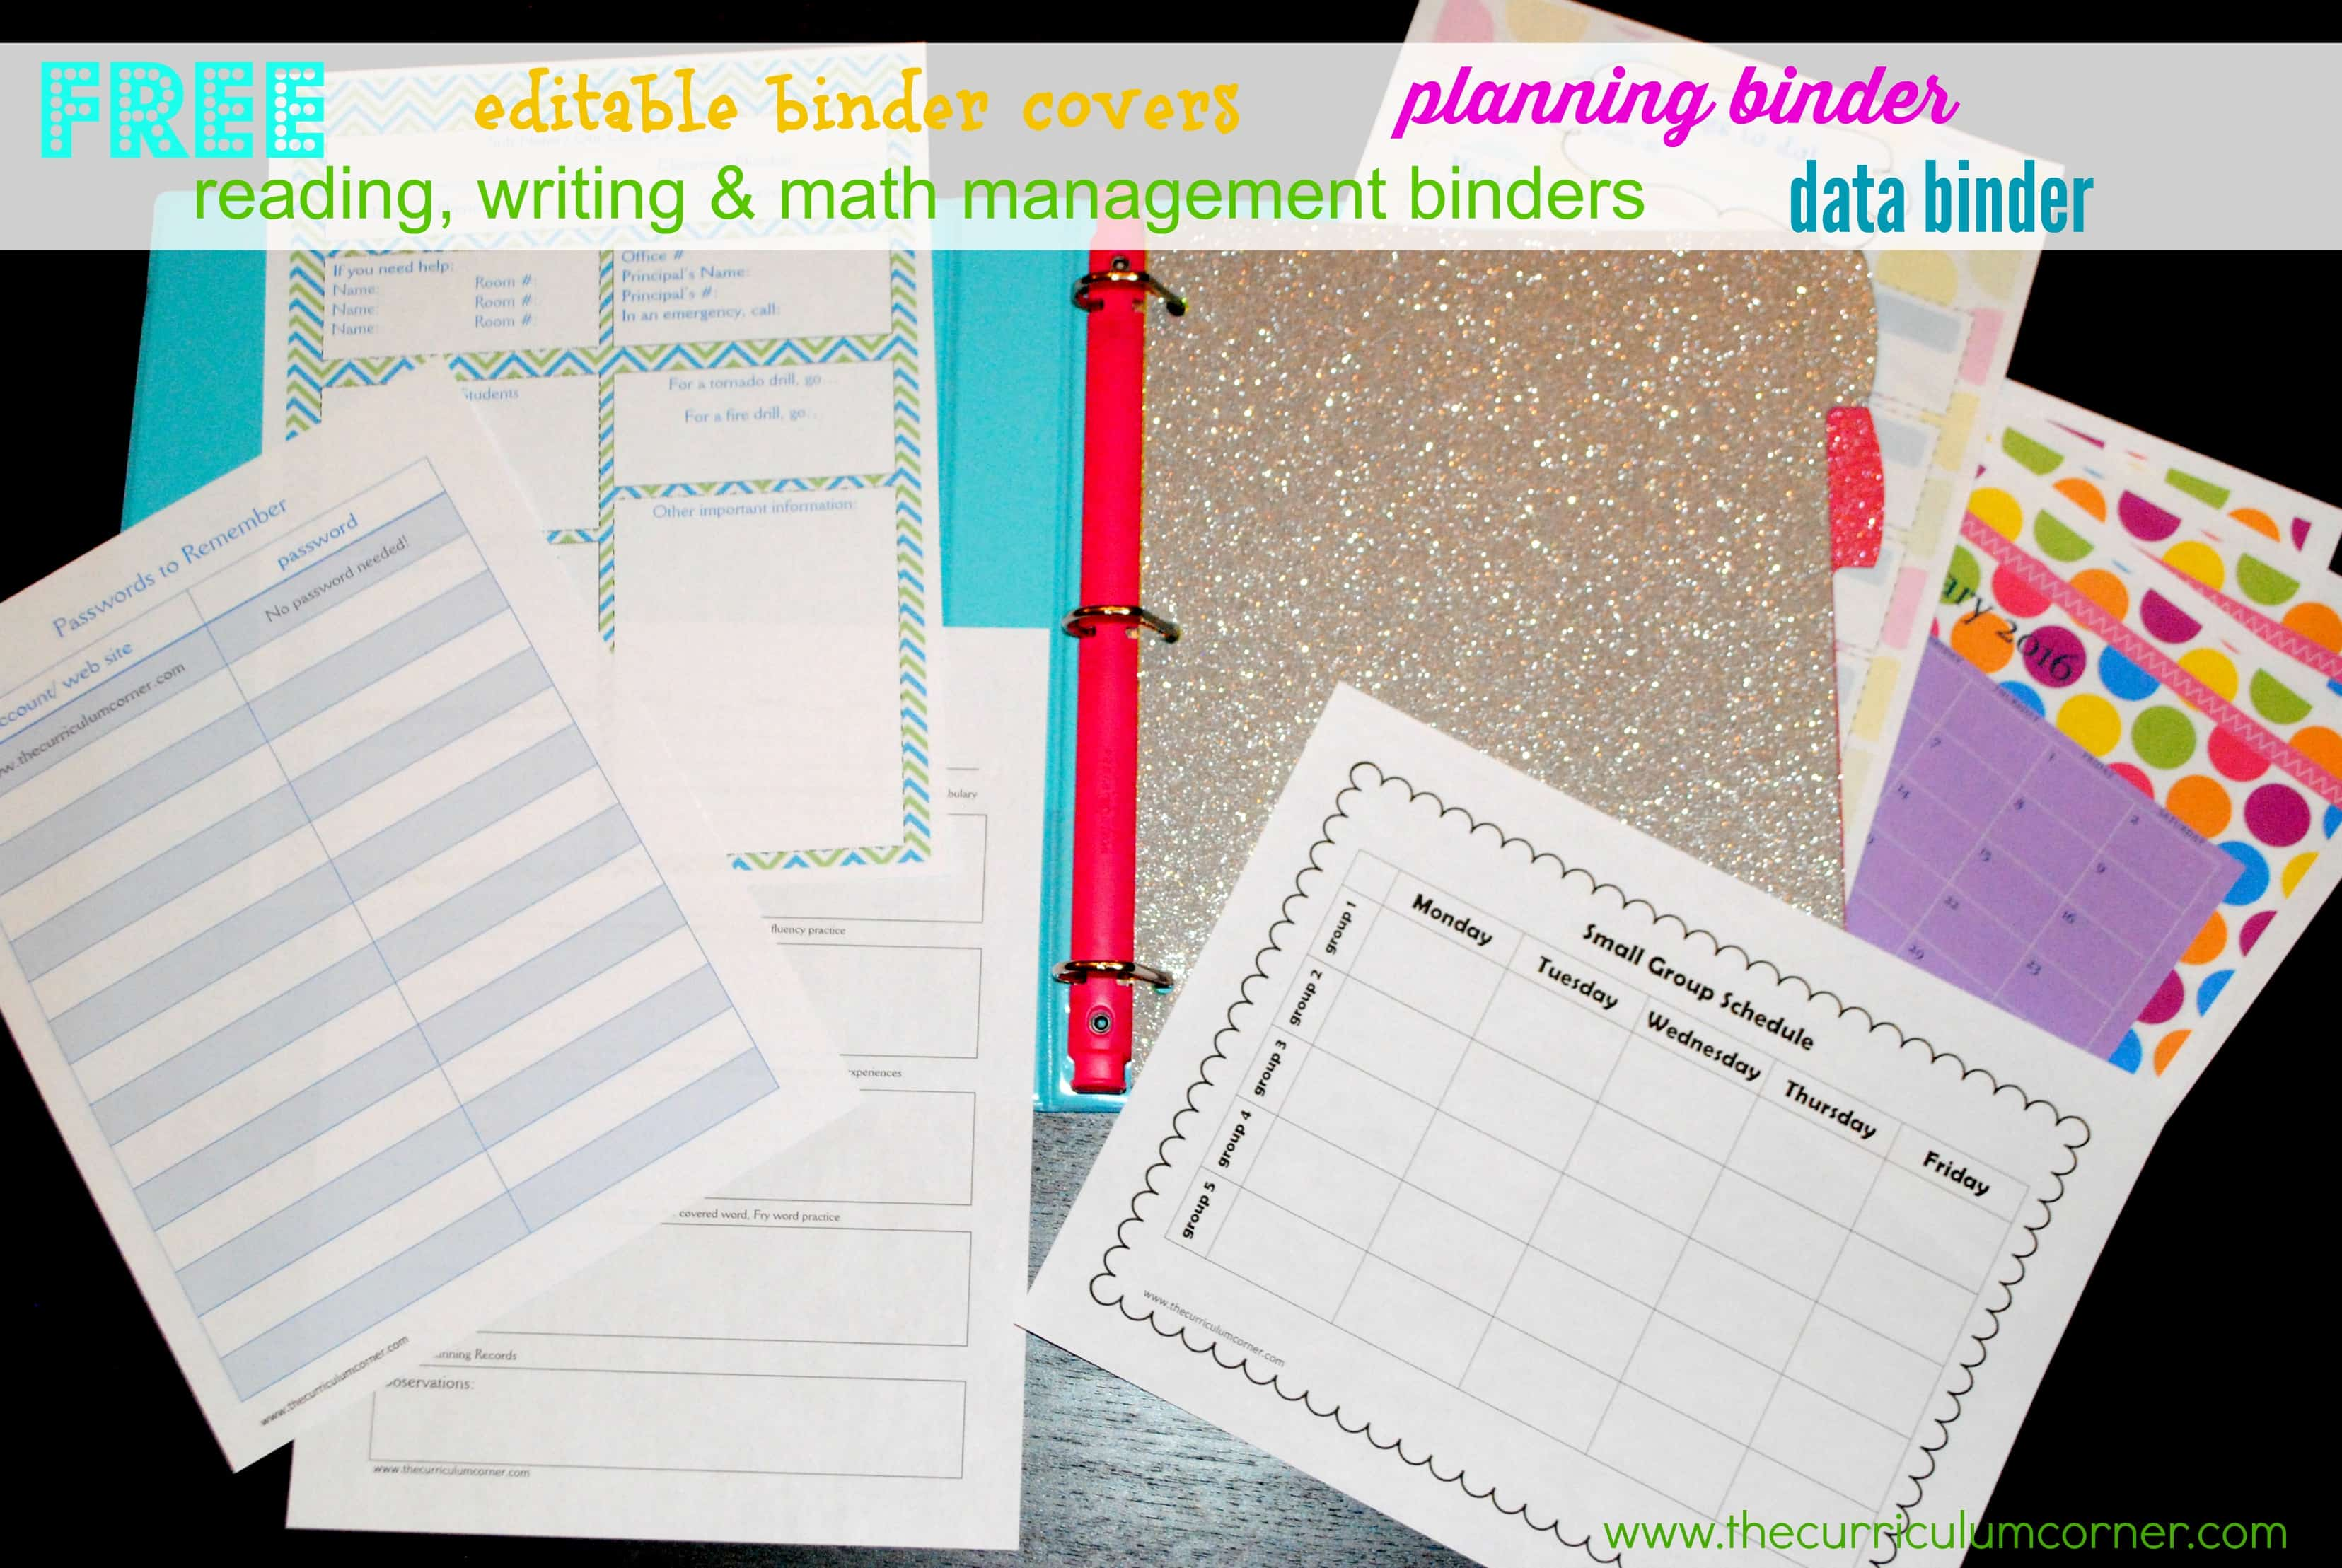 editable binder covers can add the perfect touch to your classroom organization